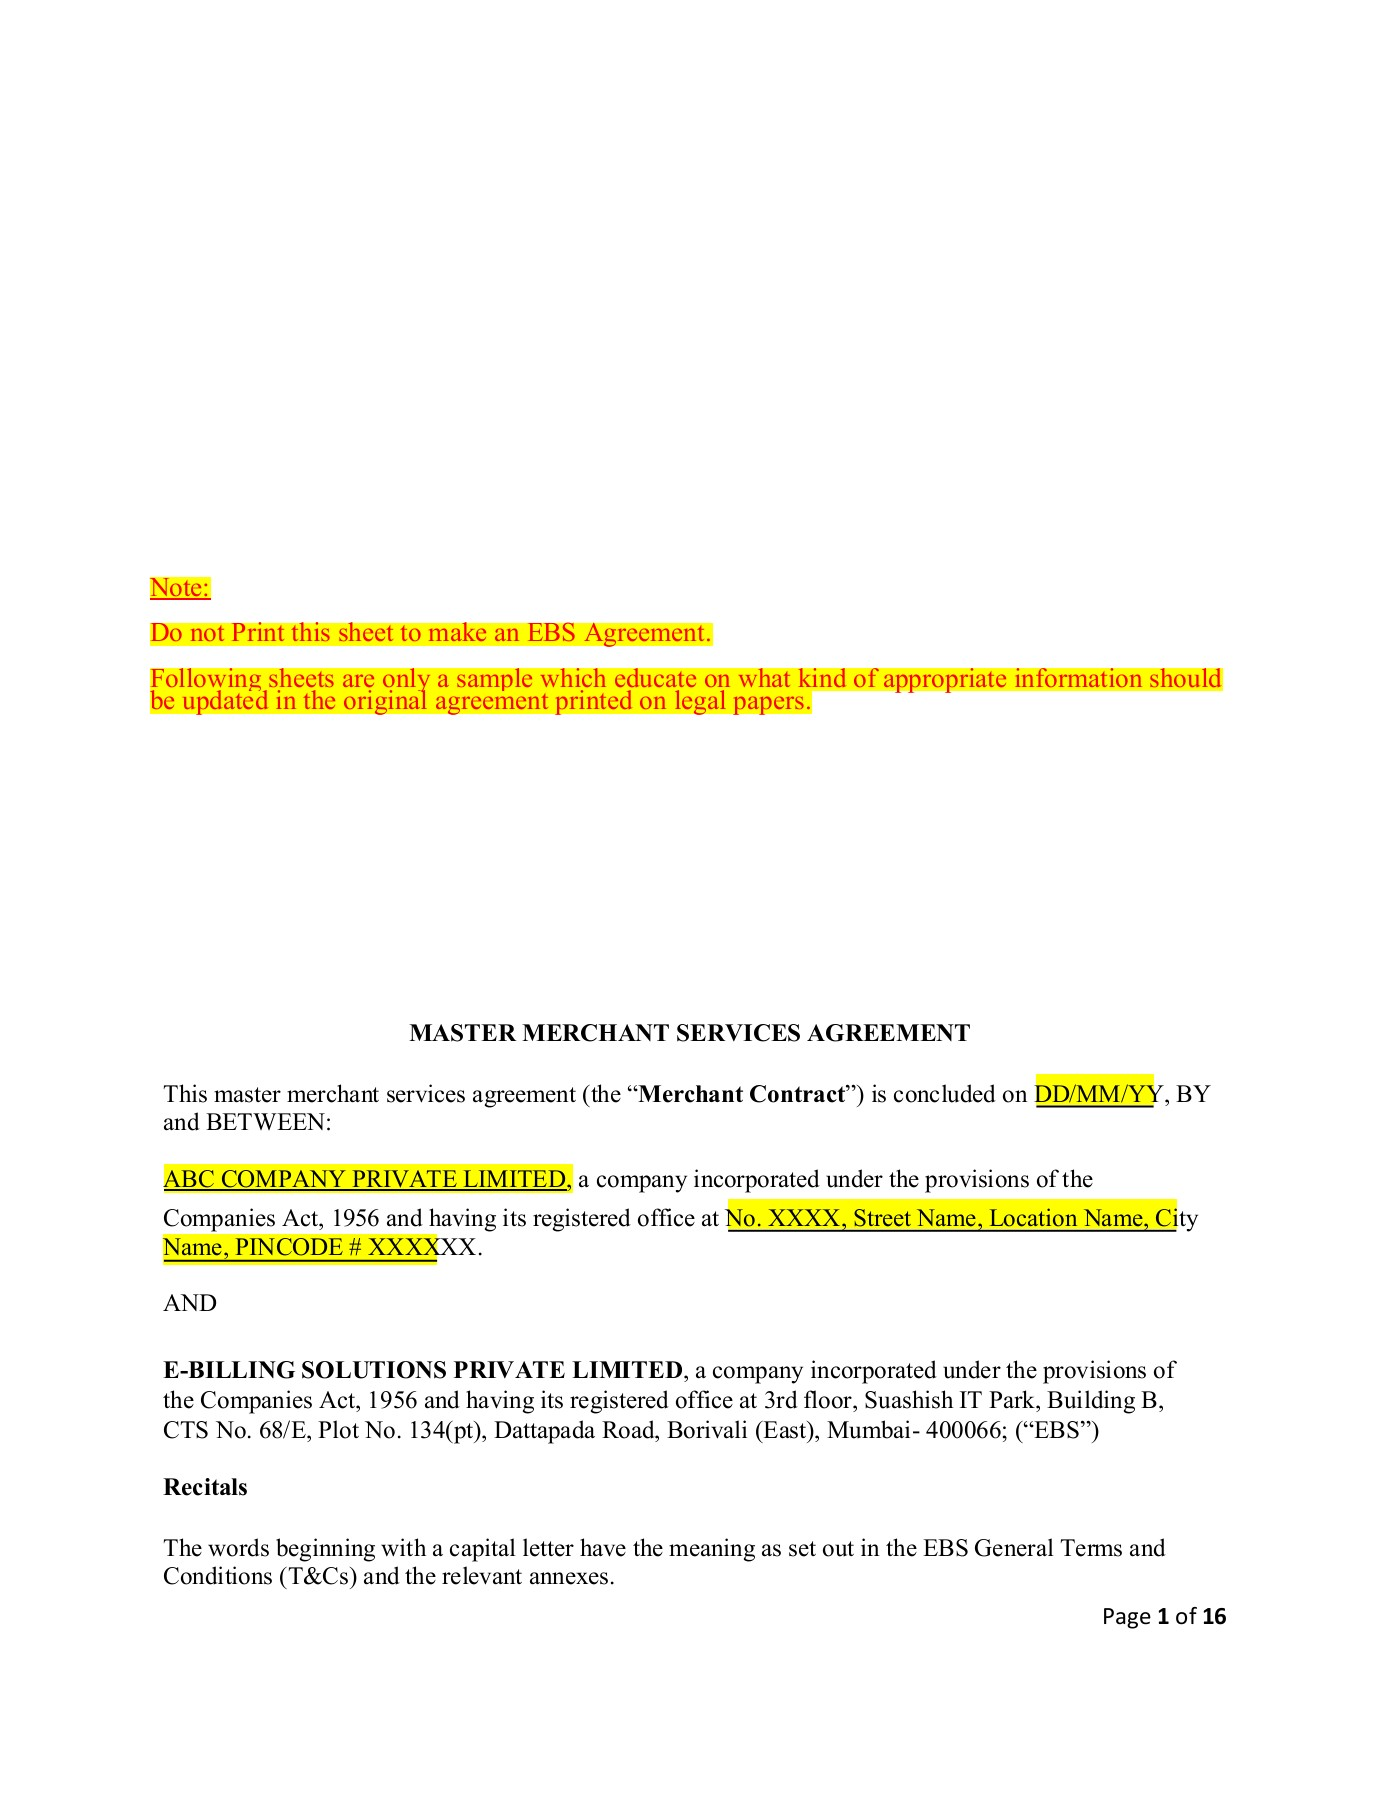 Sample Ebs Agreement Pages 1 16 Text Version Anyflip